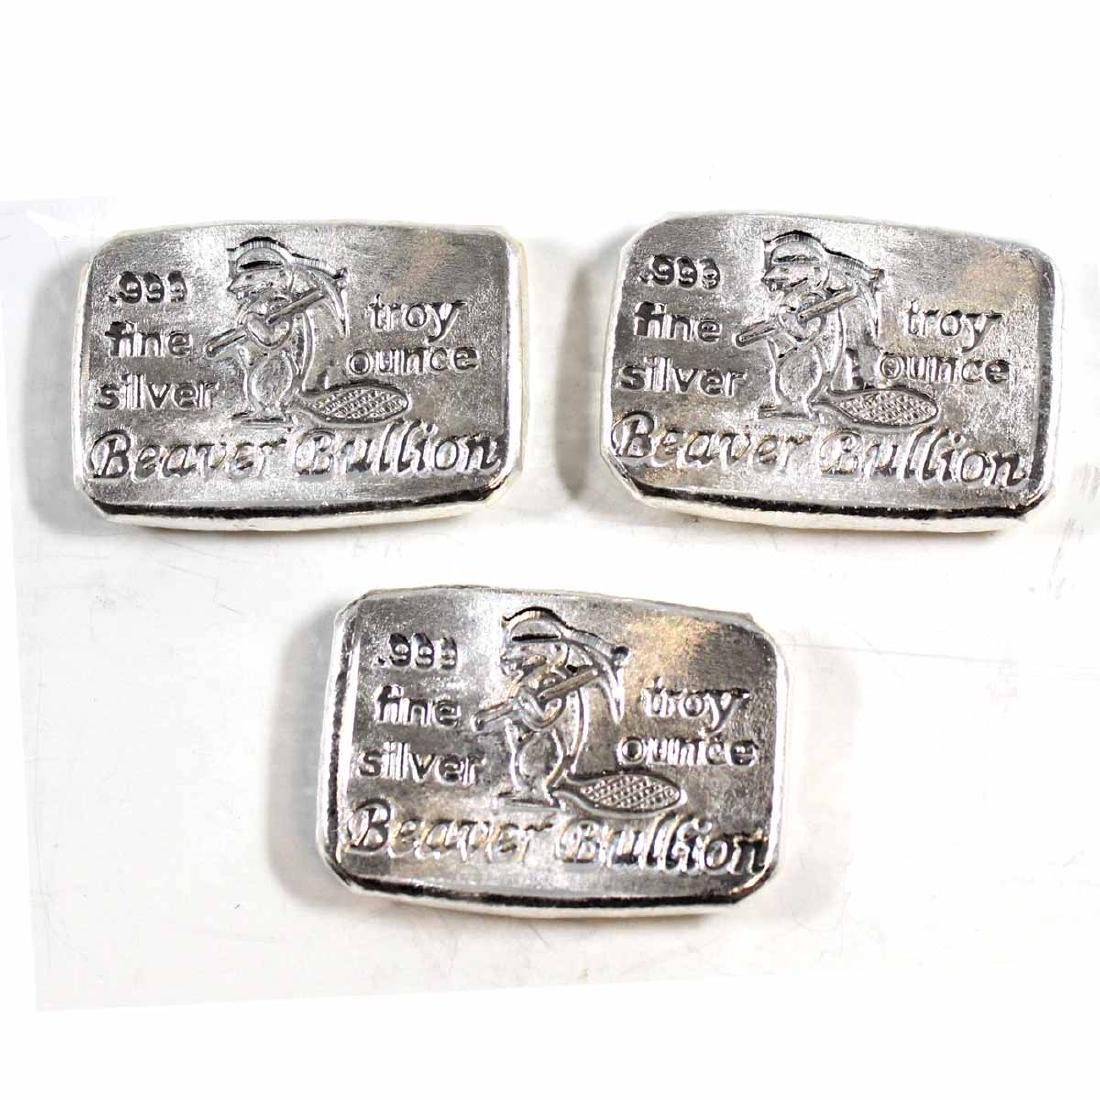 Lot of Beaver Bullion 1oz Fine Silver Bars (TAX